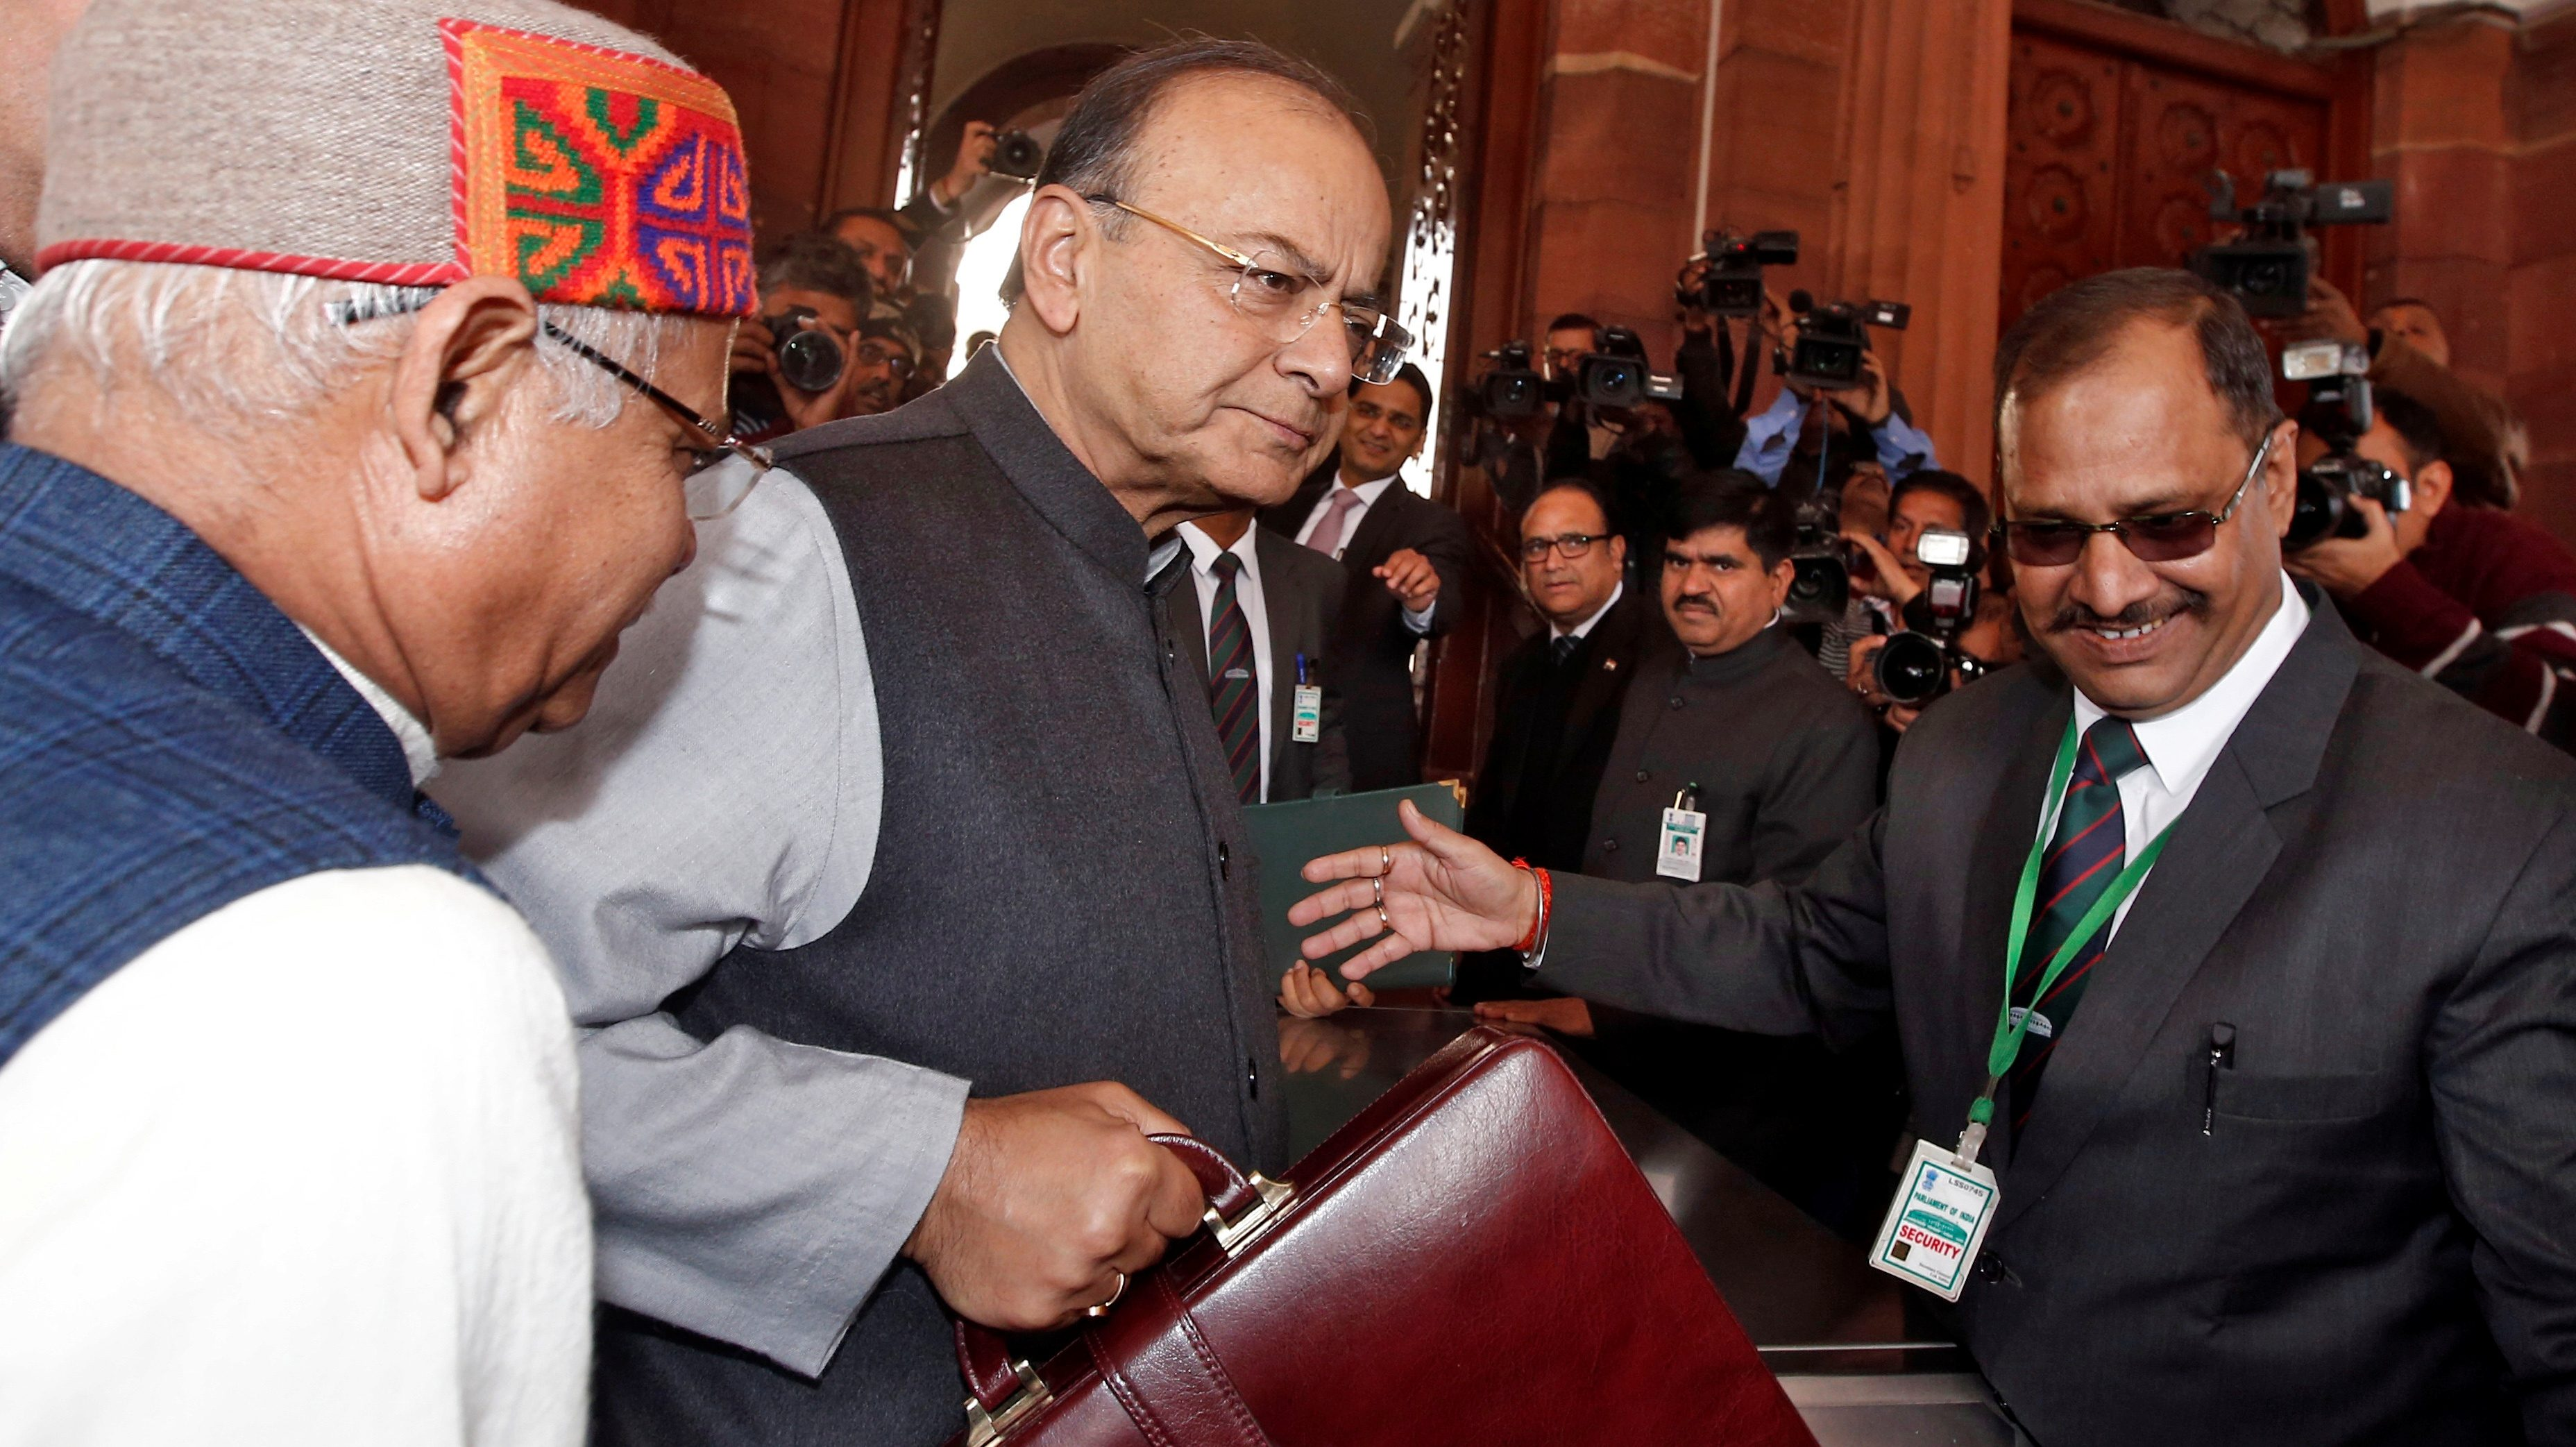 India's Finance Minister Arun Jaitley holds his briefcase as he arrives at the parliament to present the federal budget in New Delhi, India, February 1, 2018.